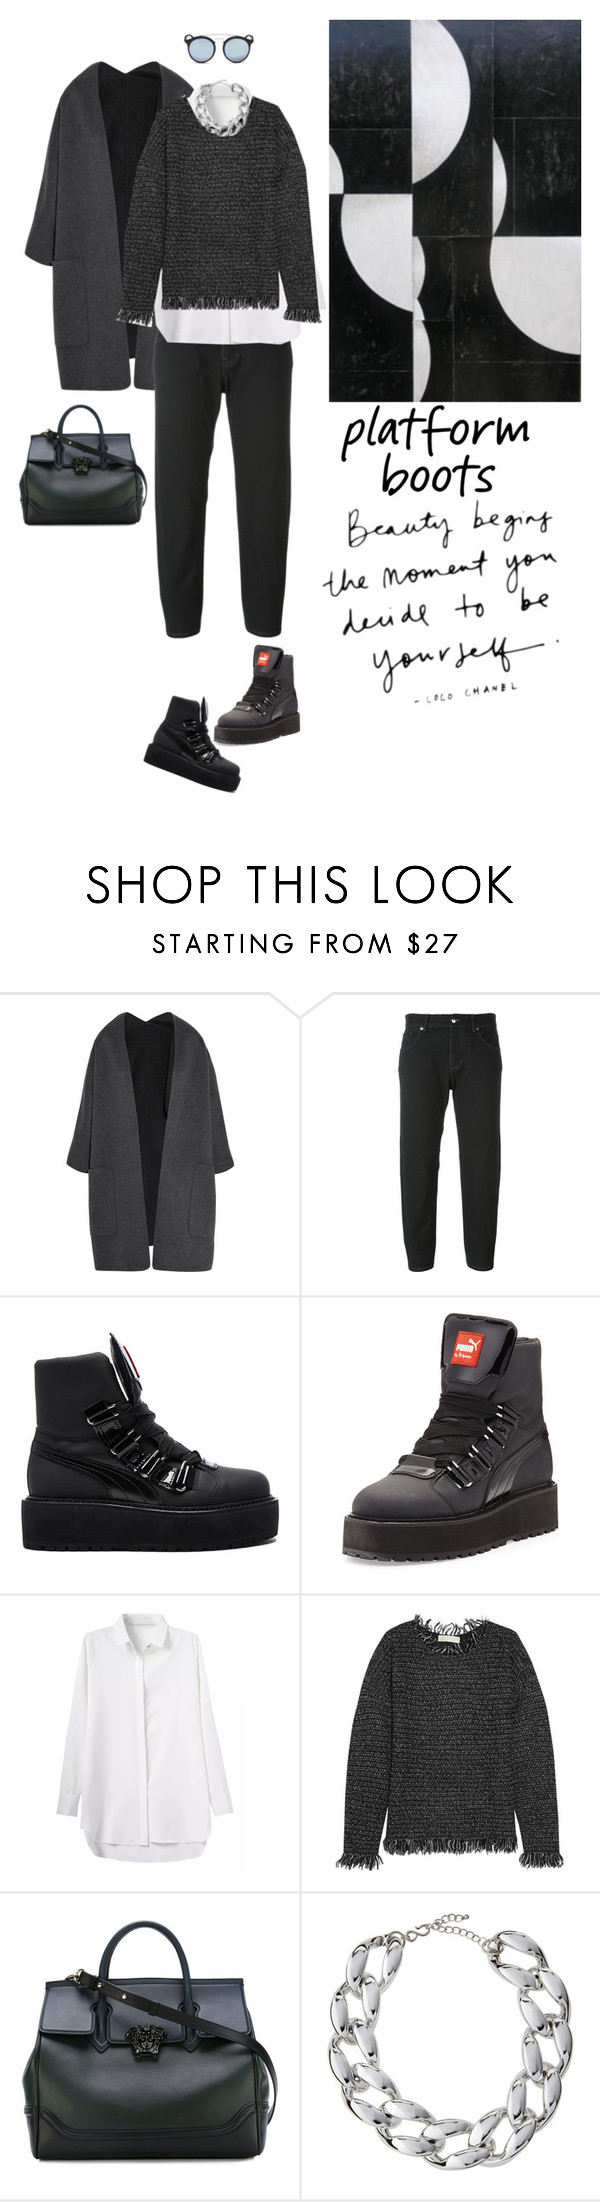 """Untitled #997"" by tamara-40 ❤ liked on Polyvore featuring Vince, MM6 Maison Margiela, Puma, MICHAEL Michael Kors, Versace, Kenneth Jay Lane, Ray-Ban and PlatformBoots"